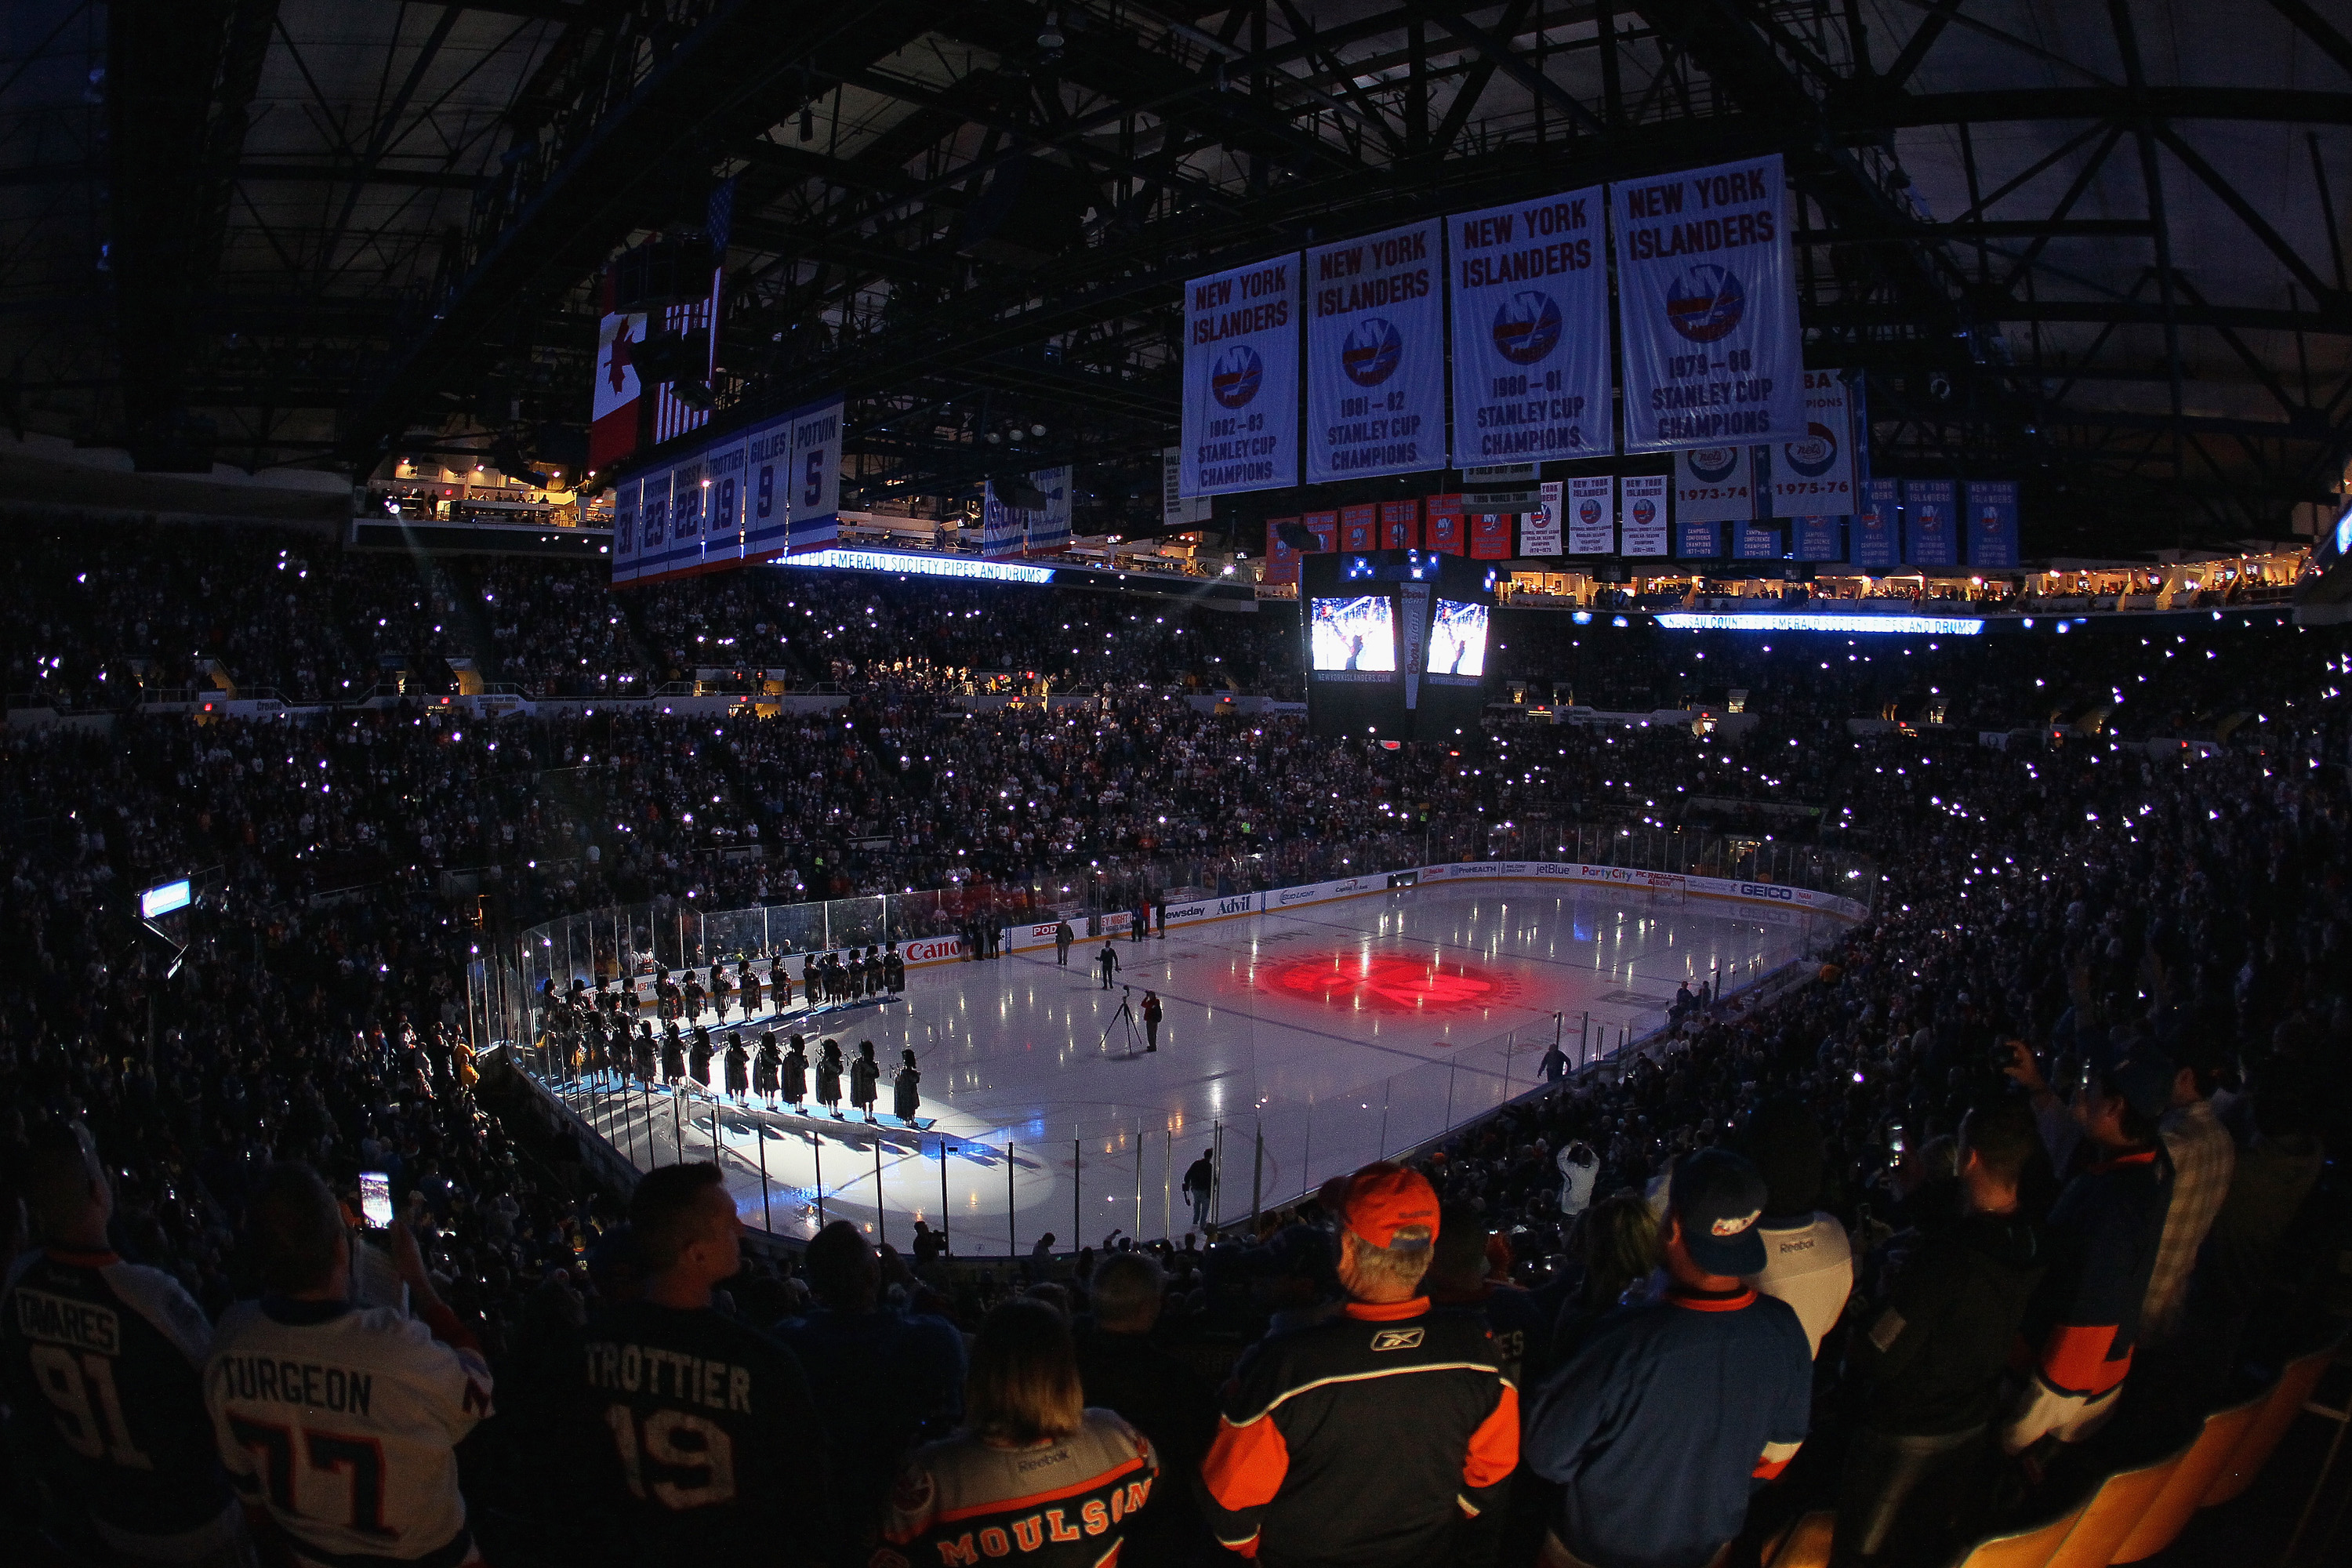 at the Nassau Veterans Memorial Coliseum on April 11, 2015 in Uniondale, New York. This is the last regular season game to be played in the building as it stands now. The team will relocate to the Barclay's Center in the Brooklyn borough of New York City starting in the 2015-16 season.